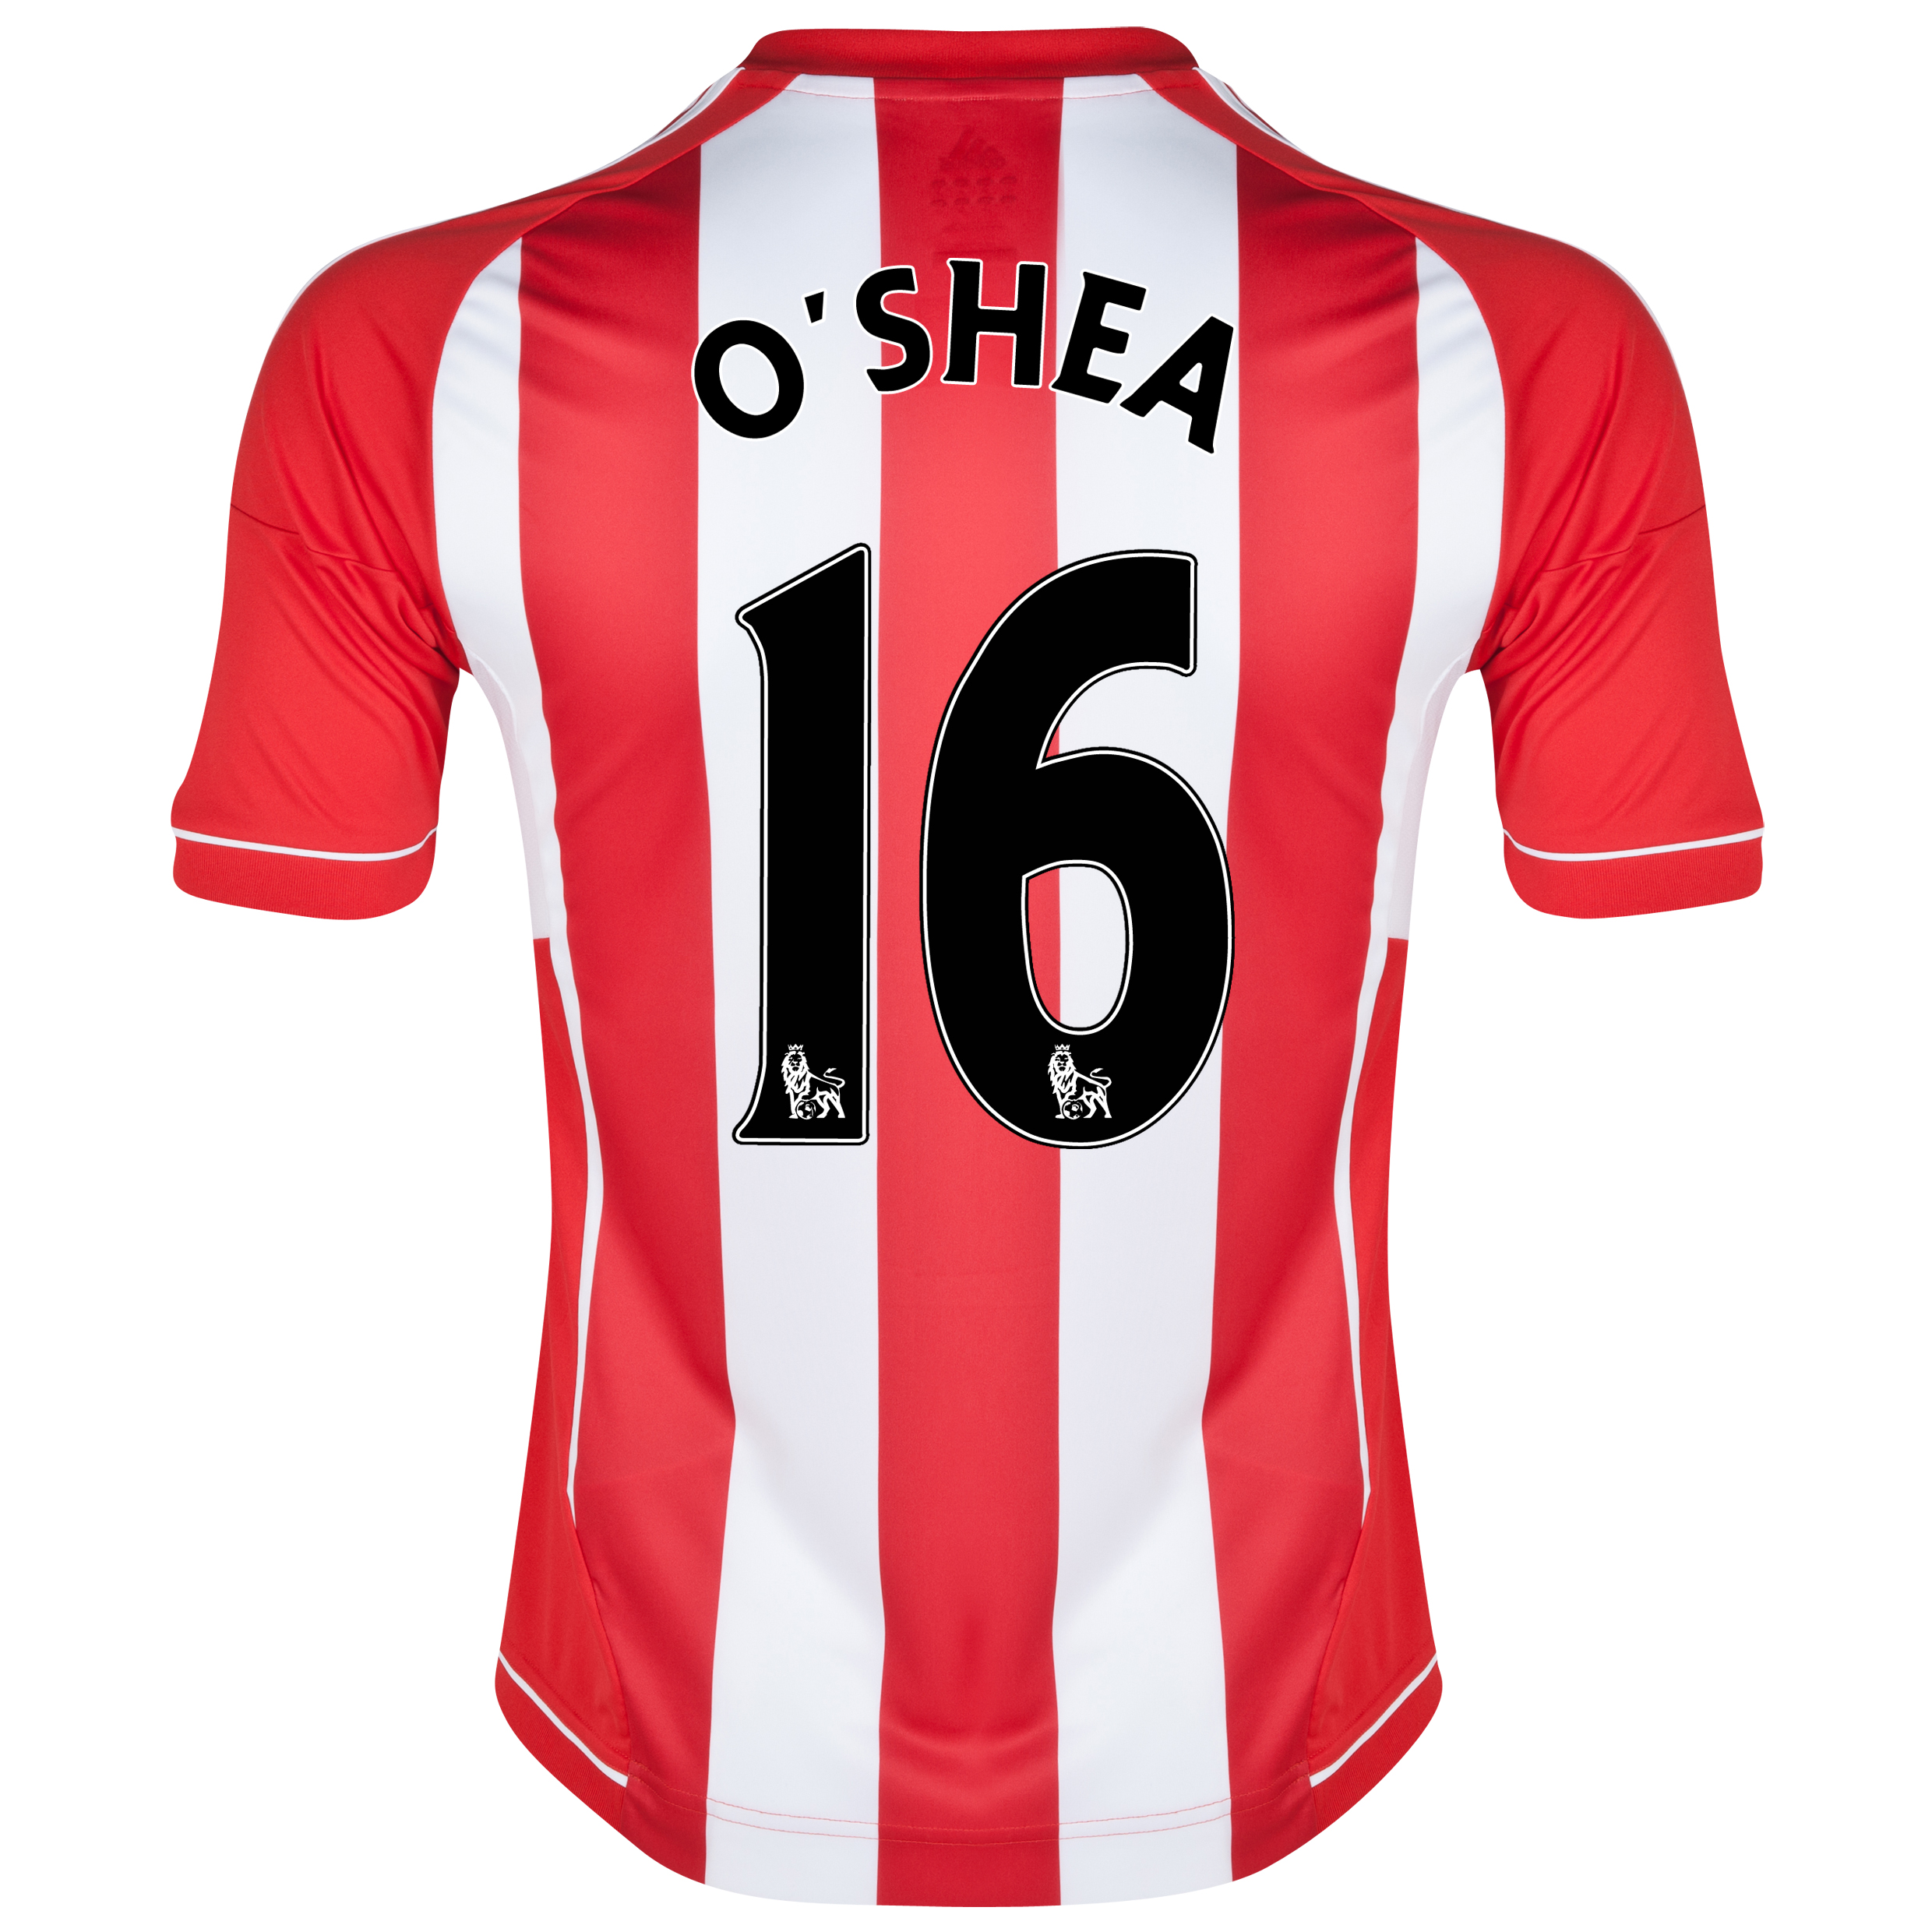 Sunderland Home Shirt 2012/13 - Junior with OShea 16 printing